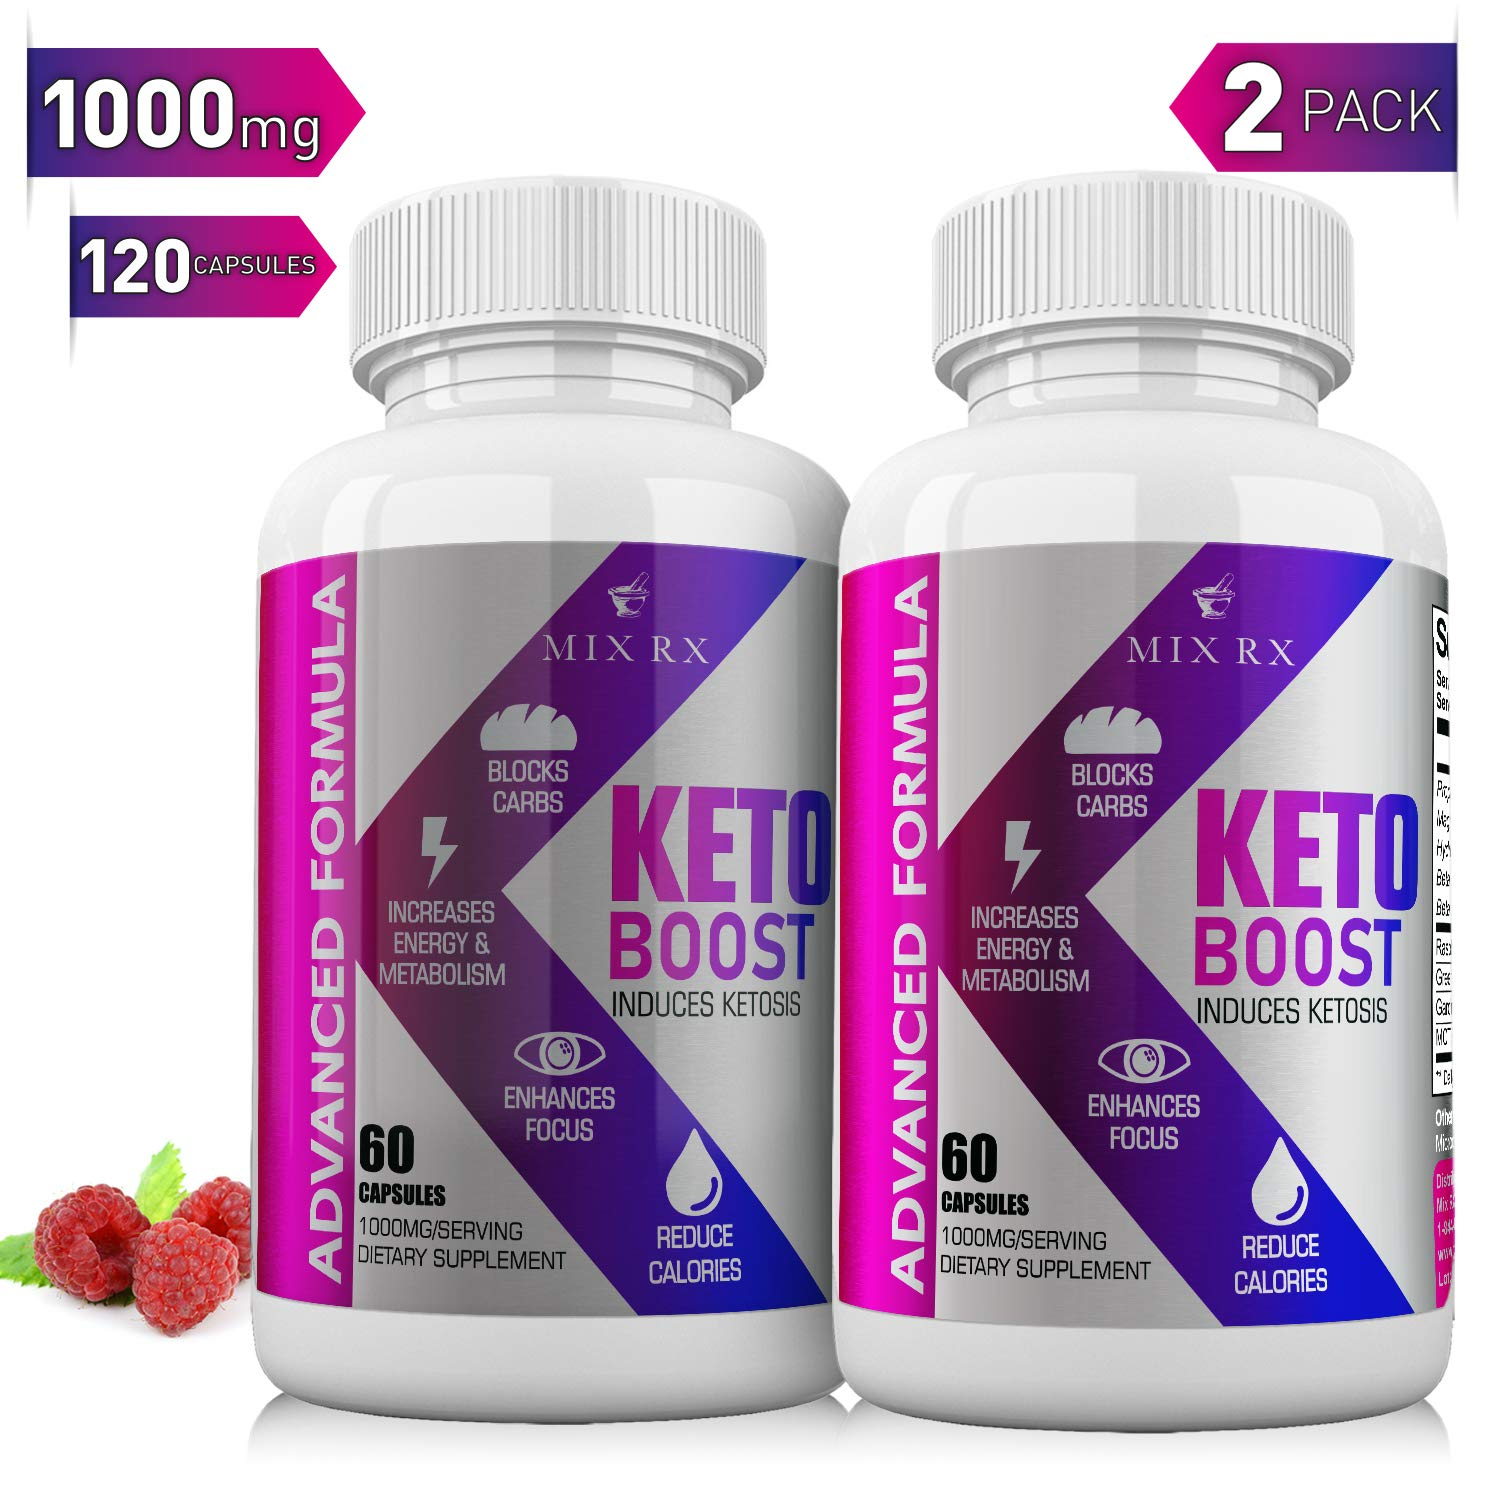 (2 Pack   120 Capsules) Keto Pills with Carb Supplement - Exogenous Ketones - Utilize Fat for Energy with Ketosis for Women Men - Health Energy & Focus, Manage Cravings, Support Metabolism - BHB Salts by Mix Rx